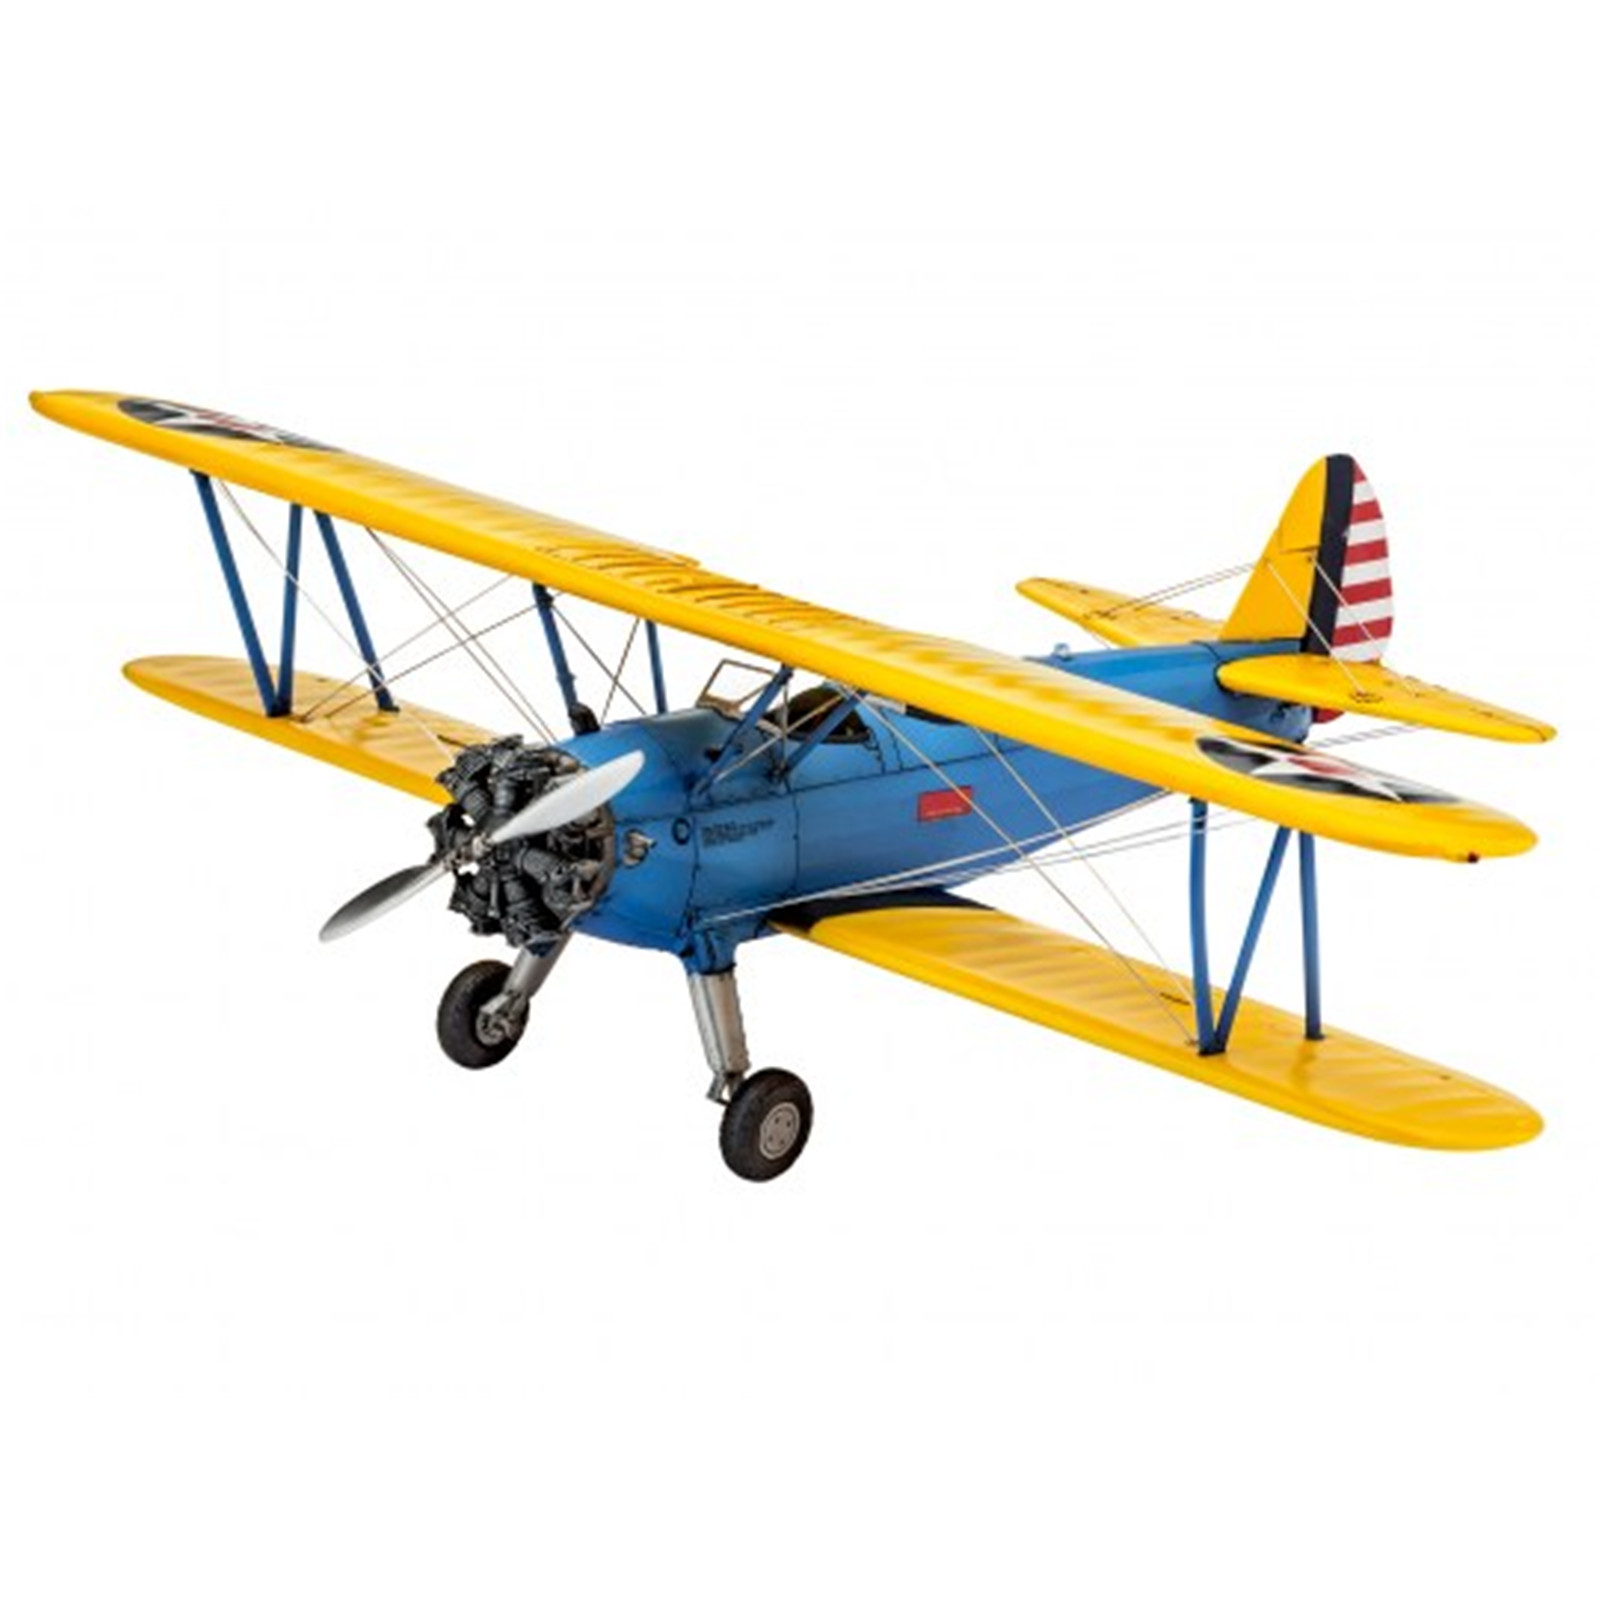 Buy the Revell - 1/48 - Stearman PT-17 Kaydet ( Revell RV03957